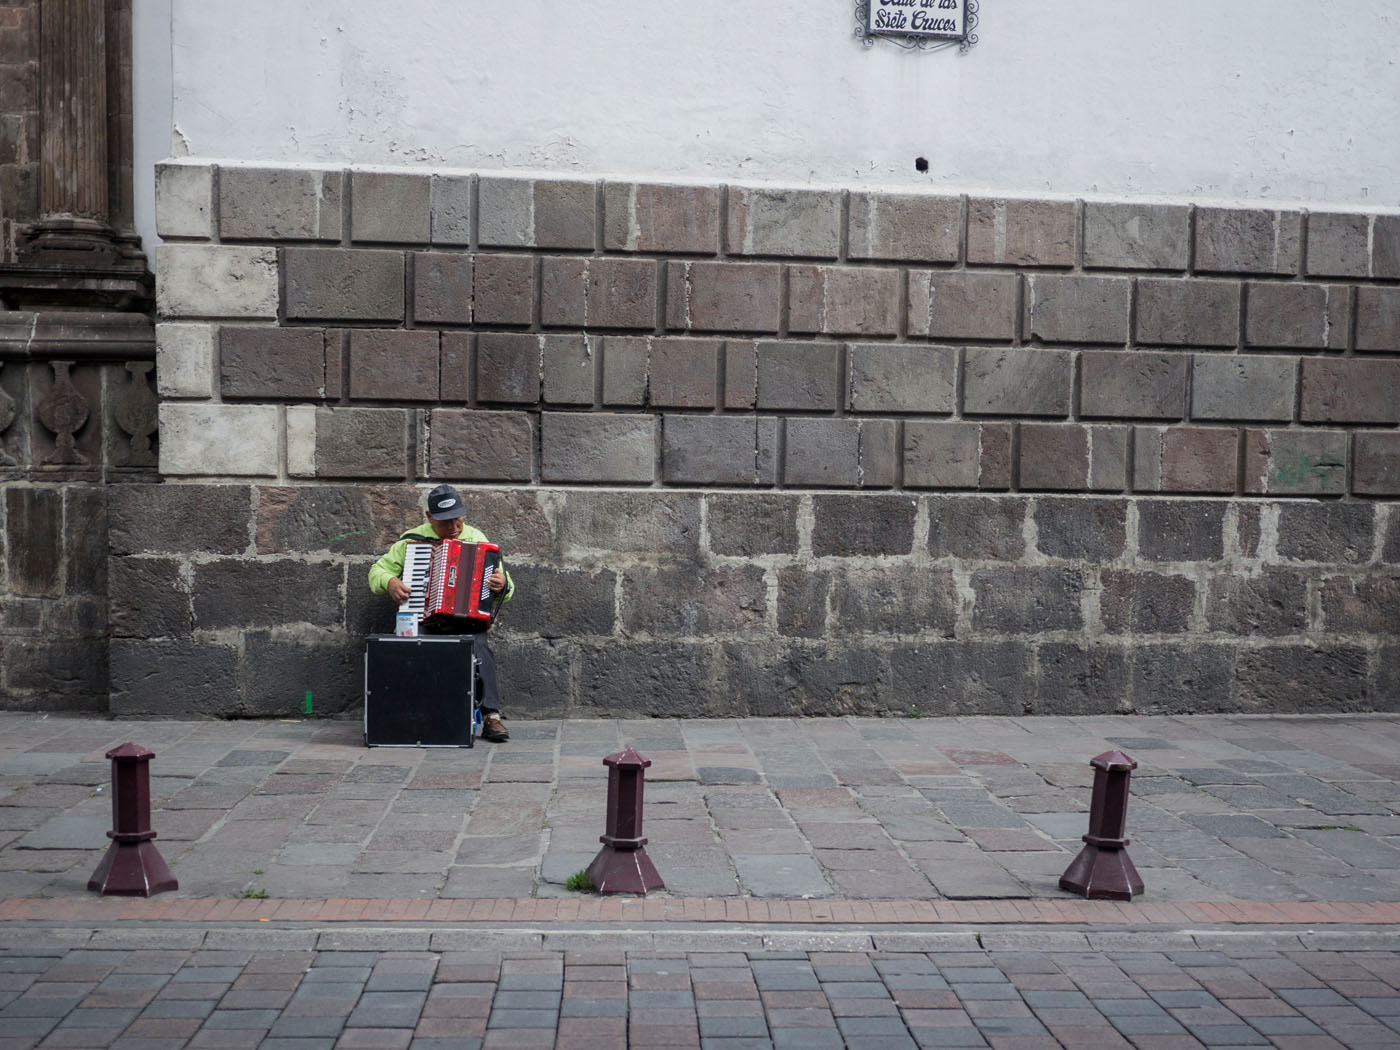 quito-ecuador-travel-streetlife-reisefotos_051